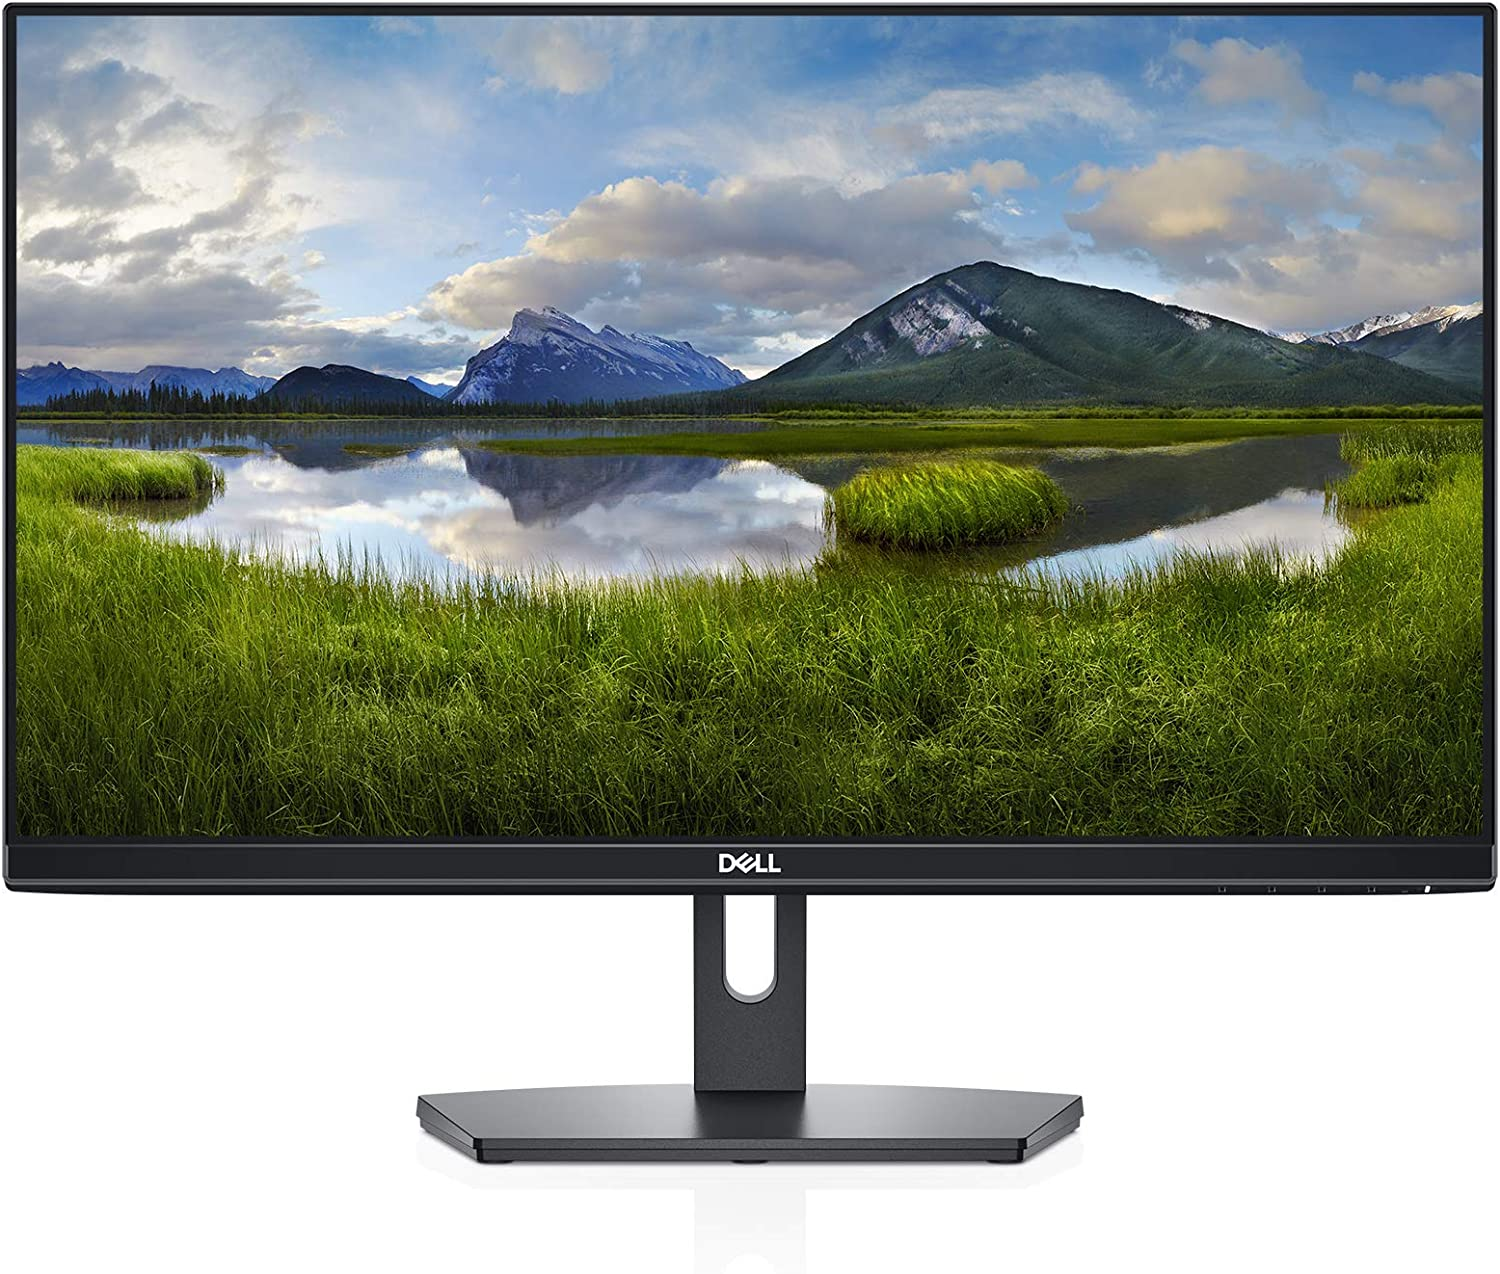 Dell SE2418X monitor under 150 reddit 2020